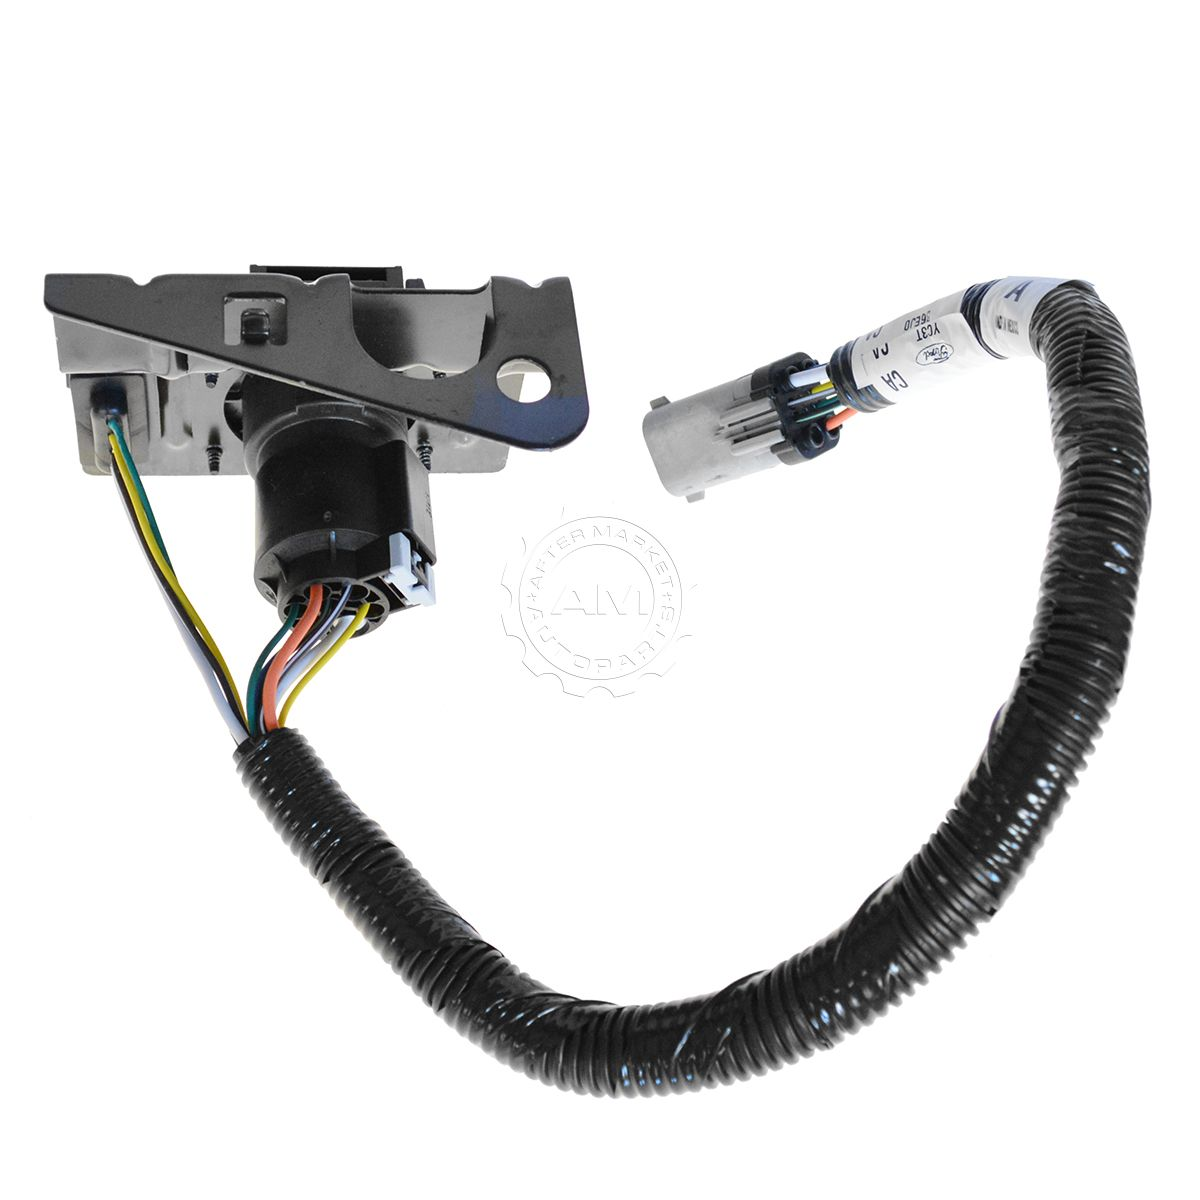 hight resolution of ford 4 7 pin trailer tow wiring harness w plug bracket for f250 2000 ford f 250 trailer wiring harness diagram ford f 250 trailer wiring harness